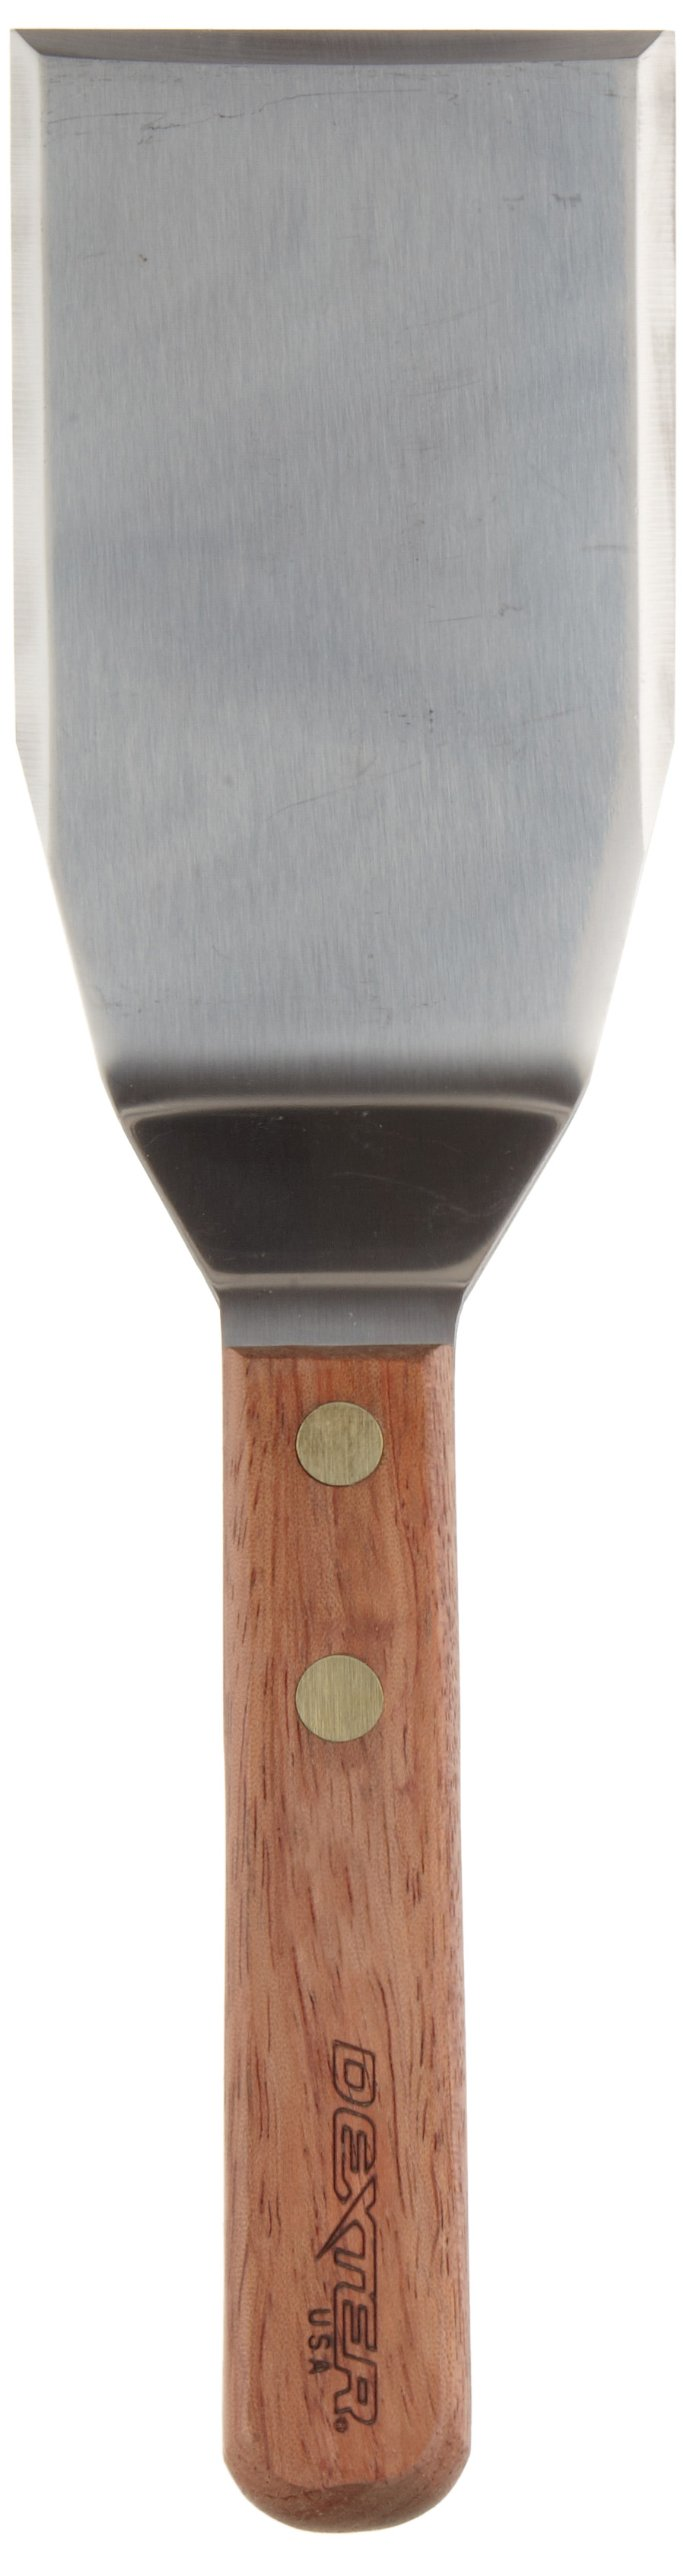 Traditional 85849CP 4'' x 3'' Hamburger Turner with wood Handle